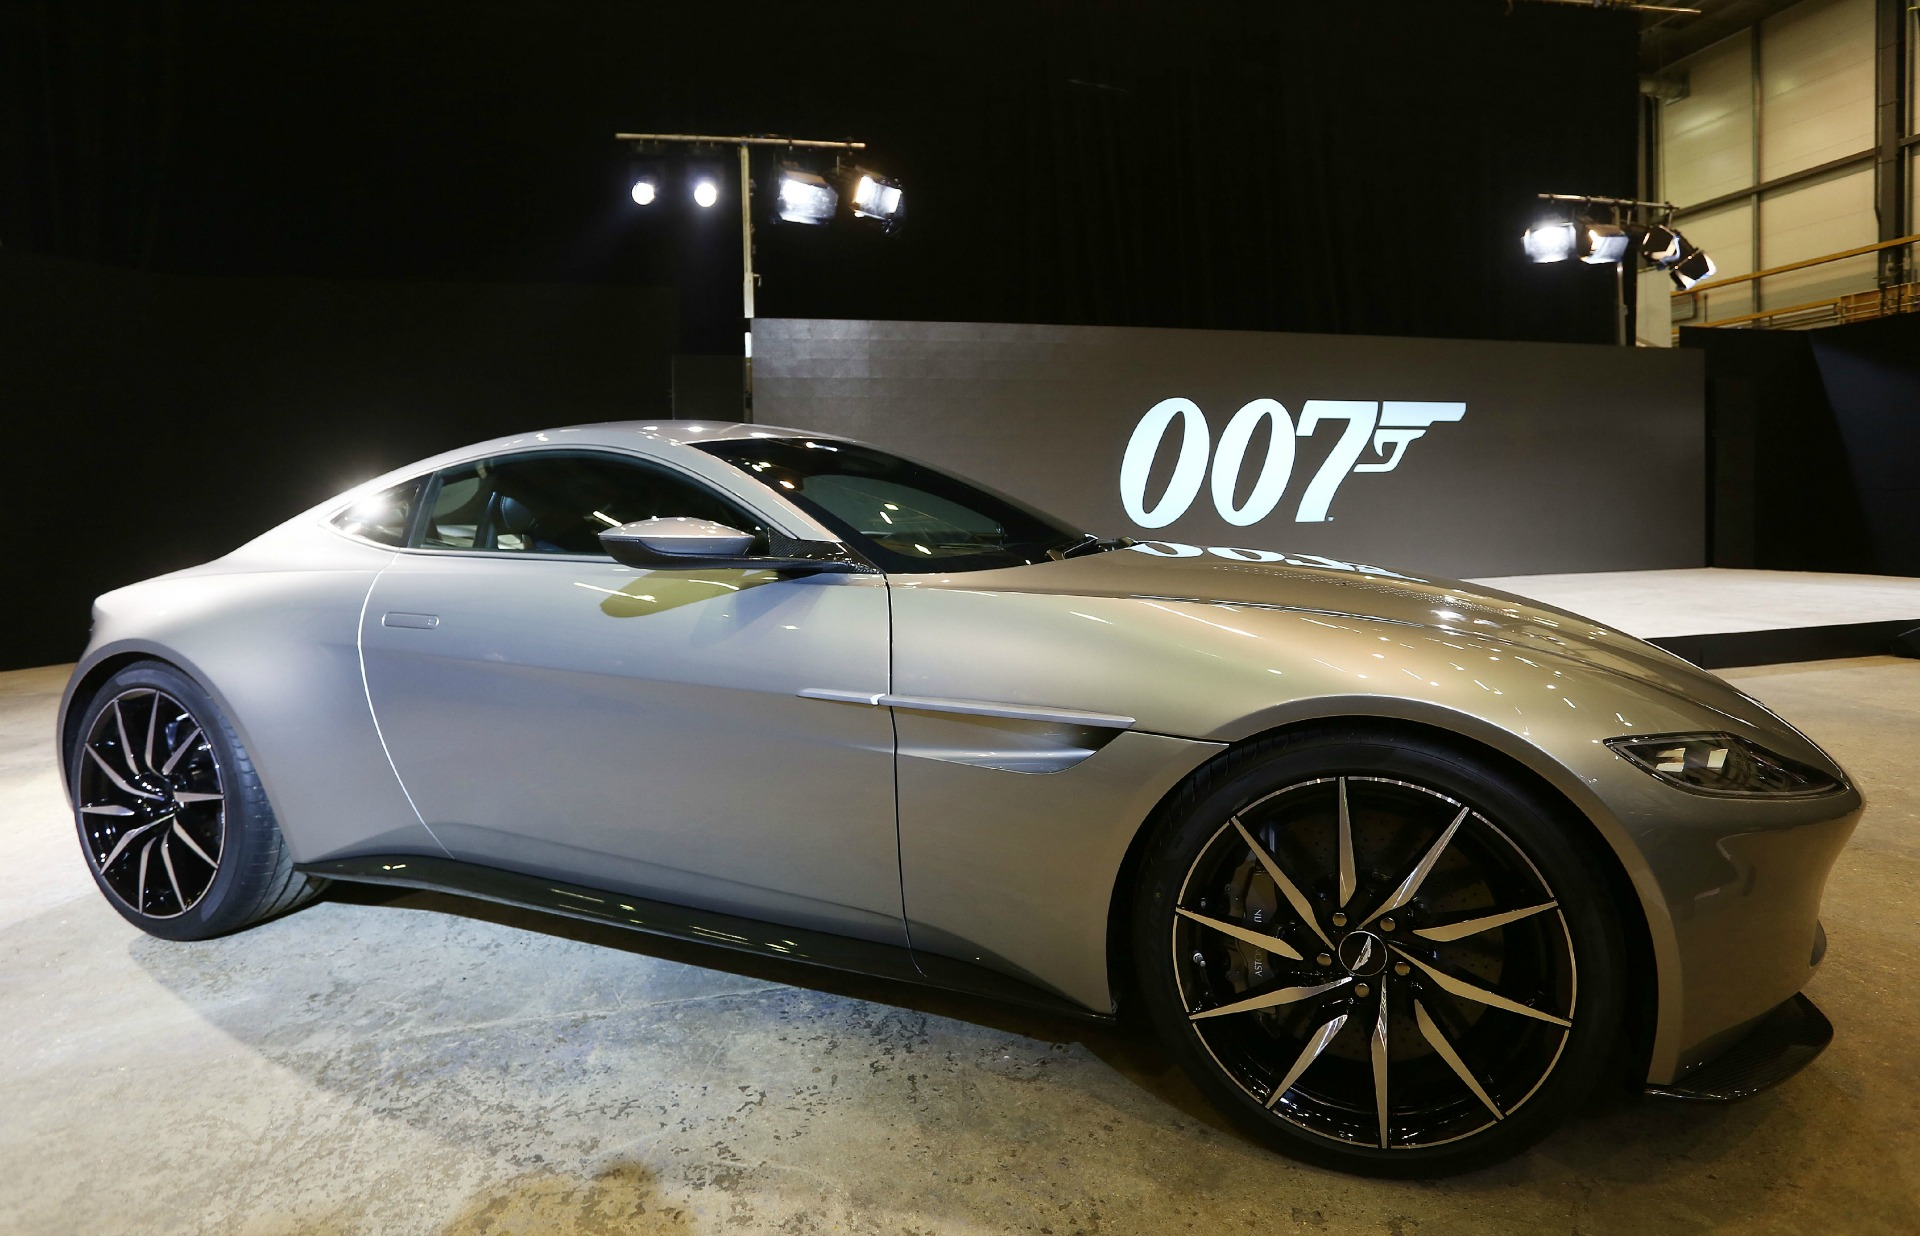 aston martin db10 la voiture de james bond spectre en dition limit e. Black Bedroom Furniture Sets. Home Design Ideas